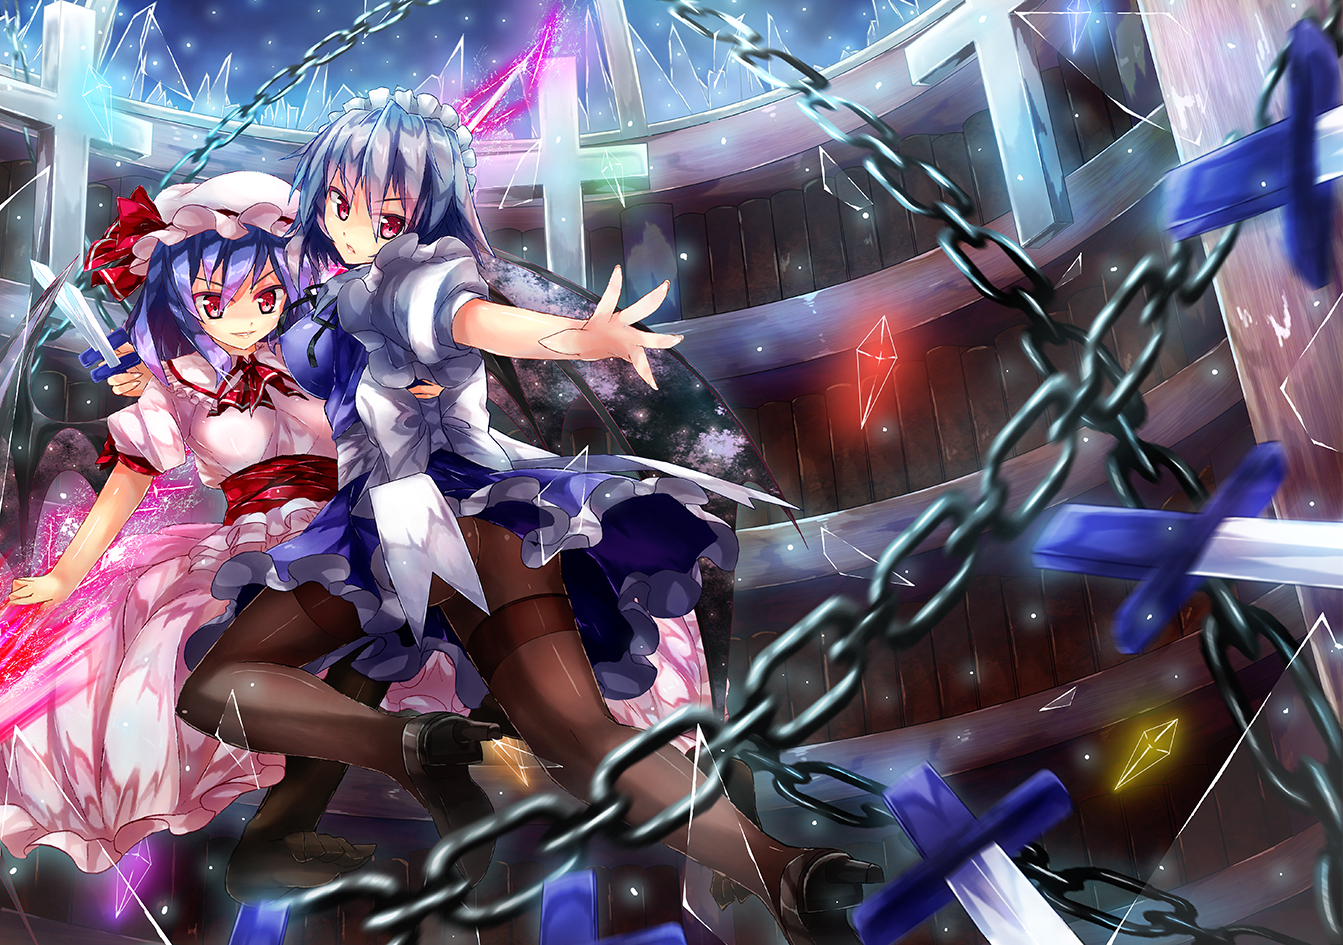 90i blue_hair chain cross erect_nipples gray_hair headdress izayoi_sakuya knife maid pantyhose remilia_scarlet short_hair touhou vampire weapon wings